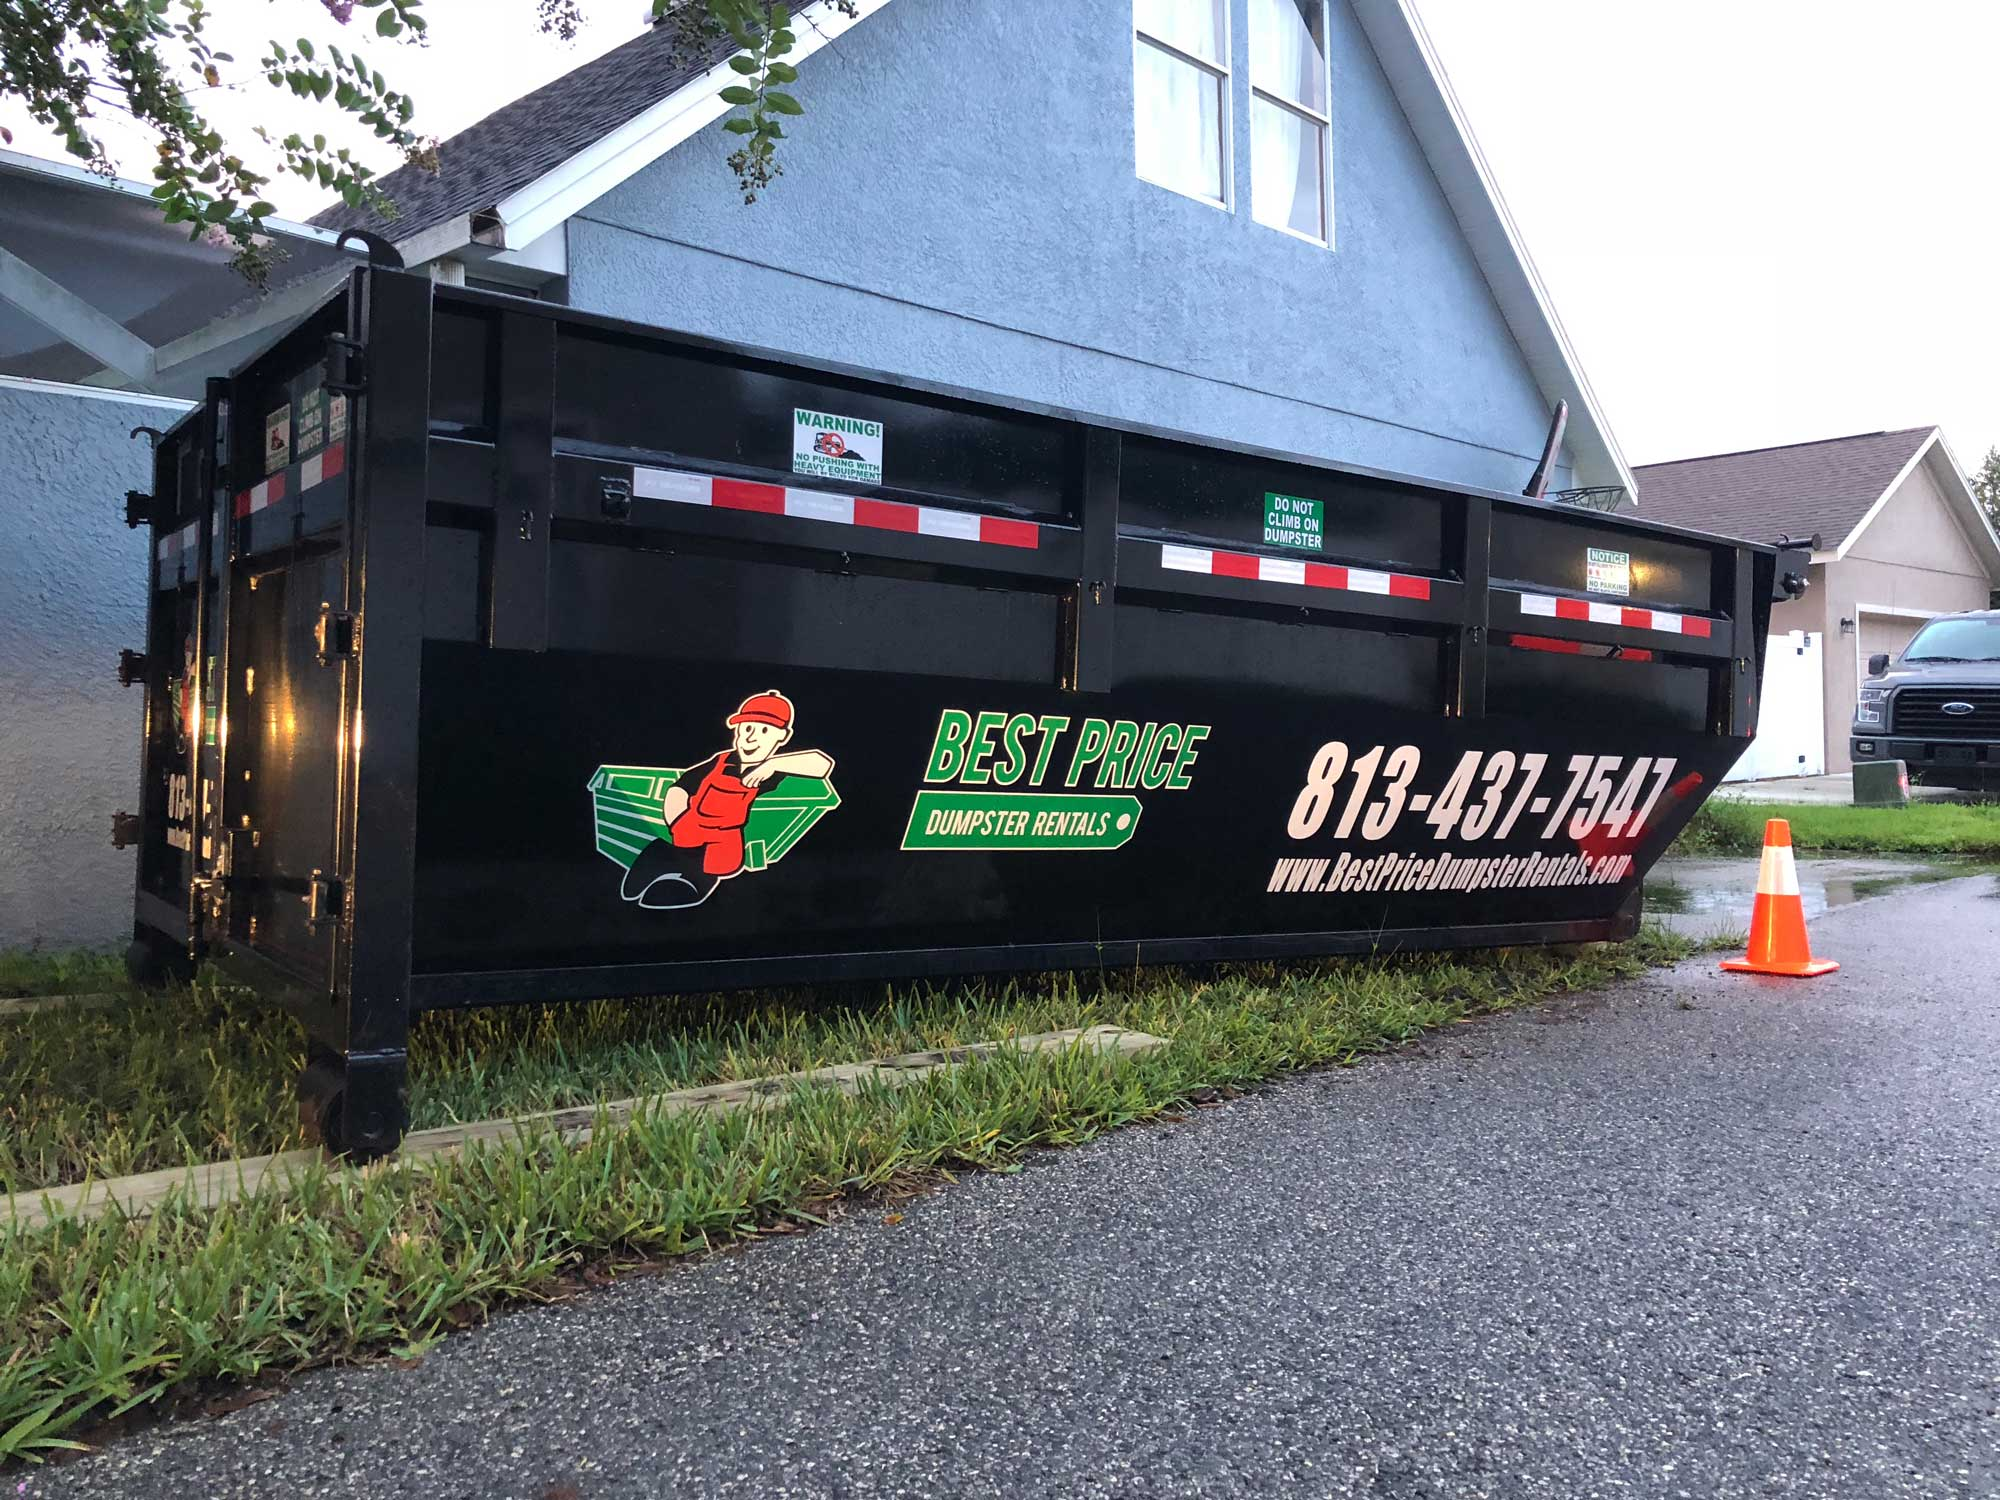 small dumpster rental